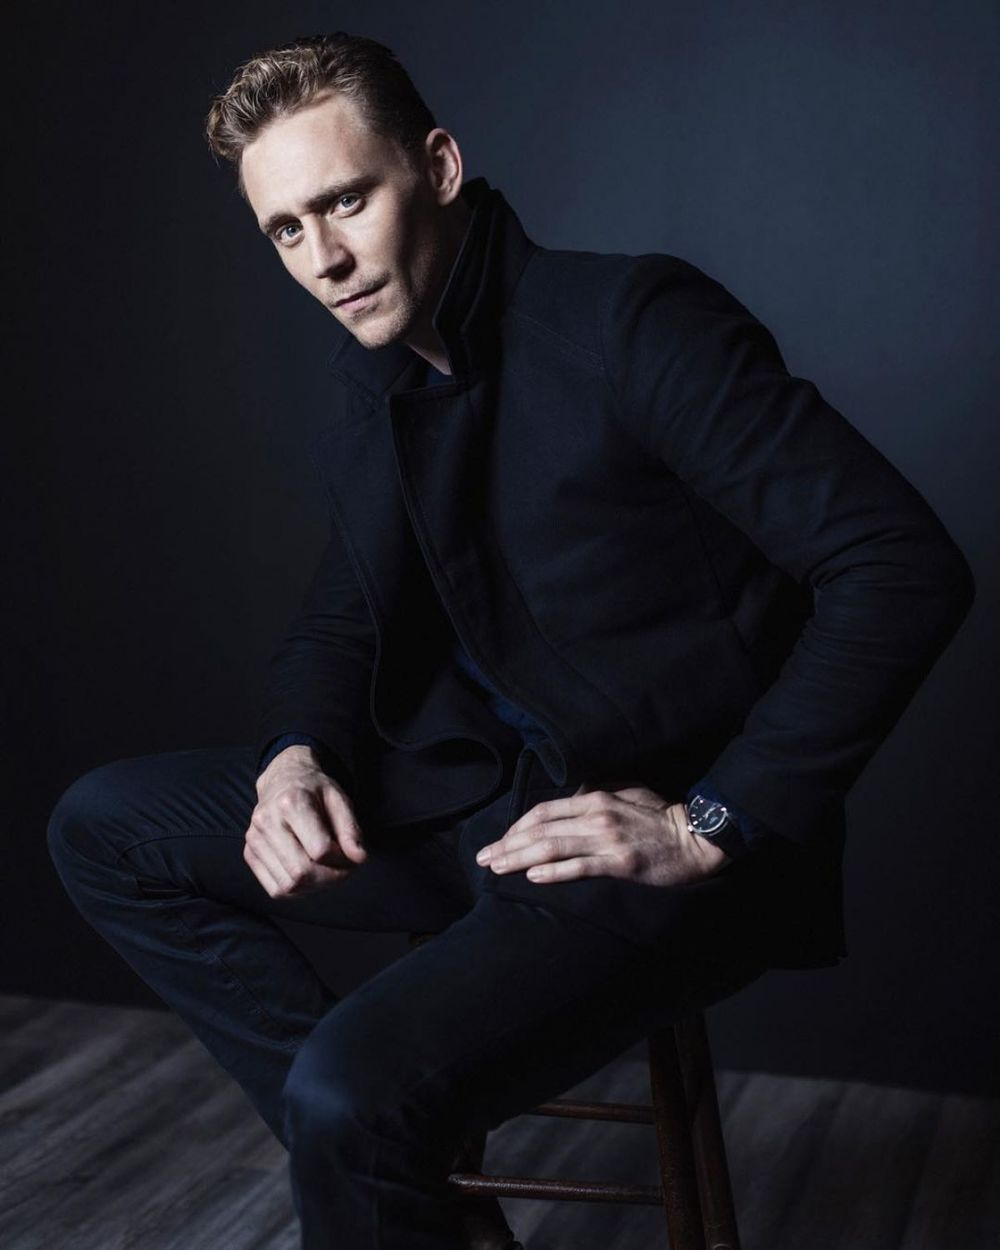 Lilith in Libra Tom Hiddleston.jpg